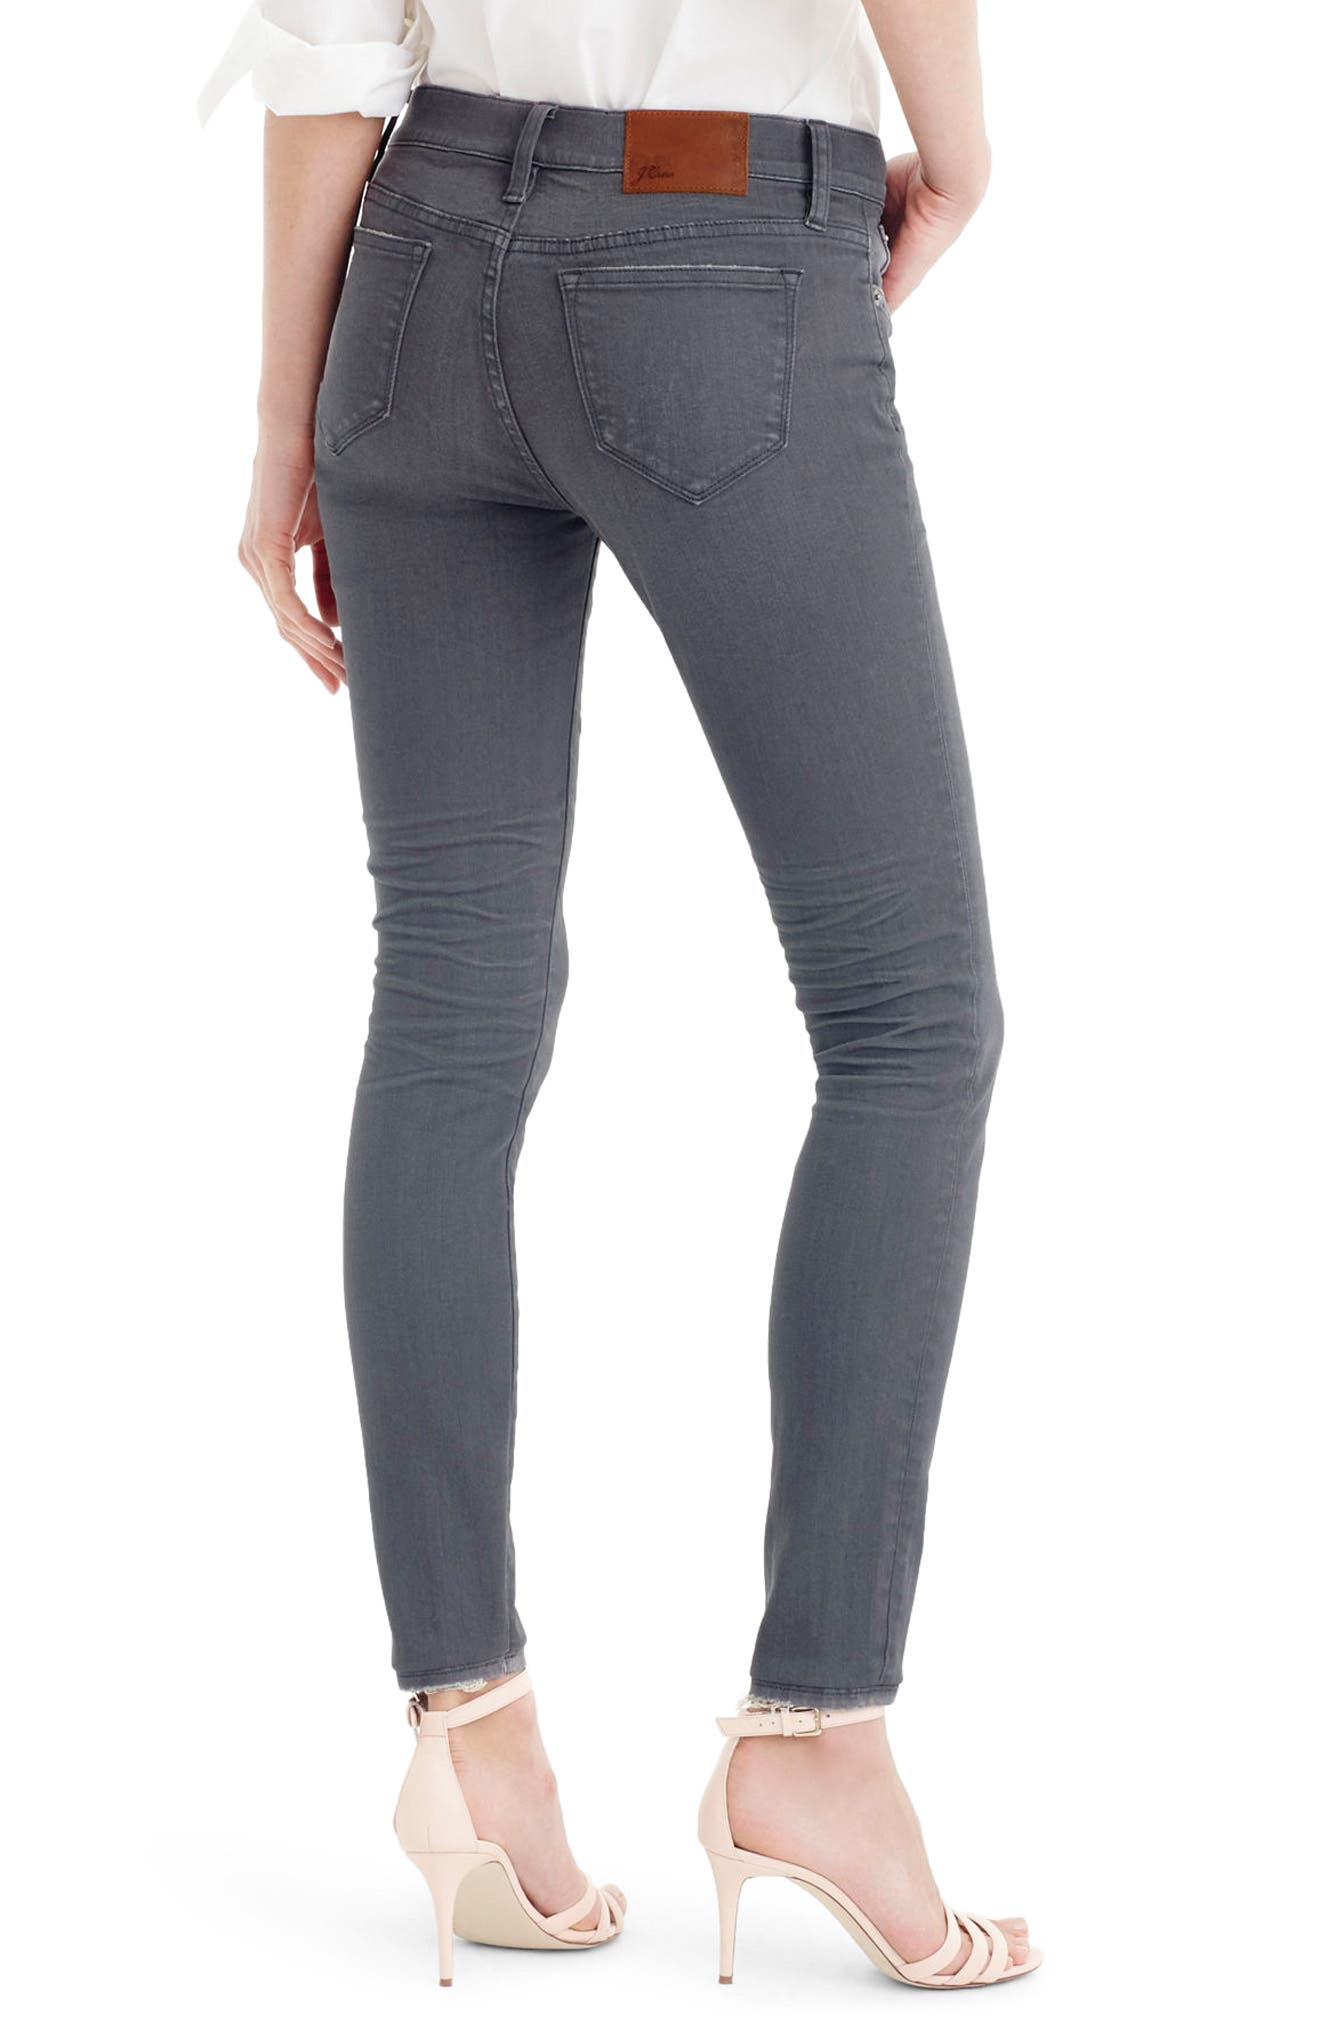 Toothpick Jeans,                             Alternate thumbnail 2, color,                             Grey Dove